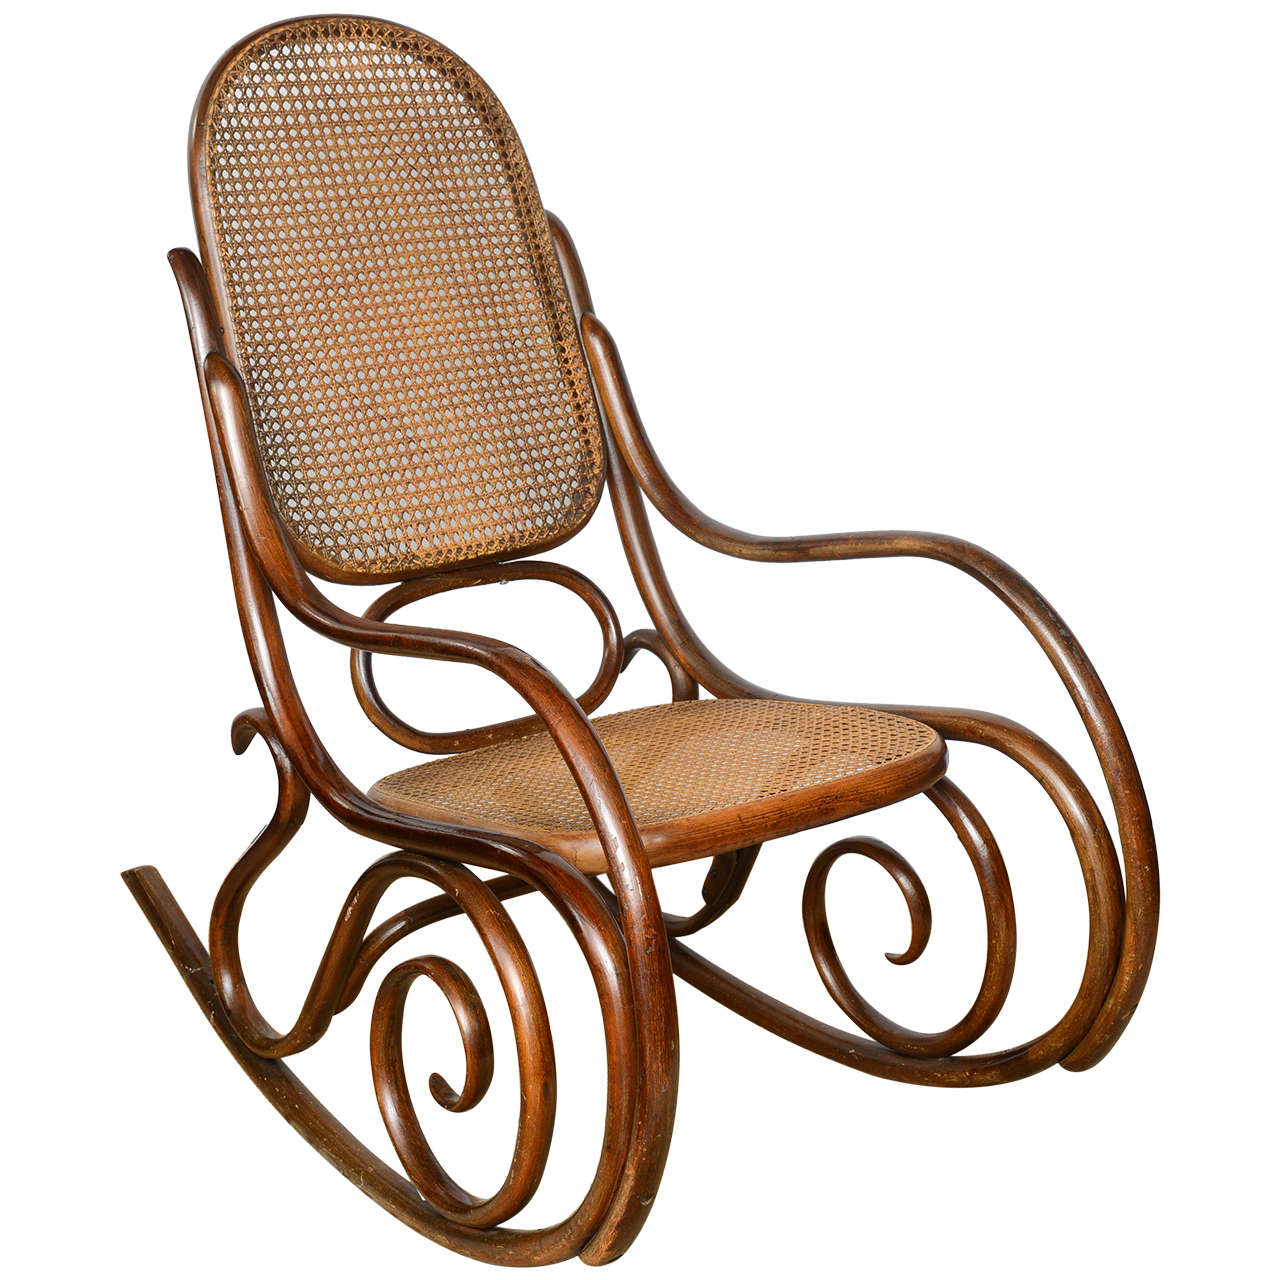 Rock Chair Vintage Thonet Bentwood Rocking Chair At 1stdibs